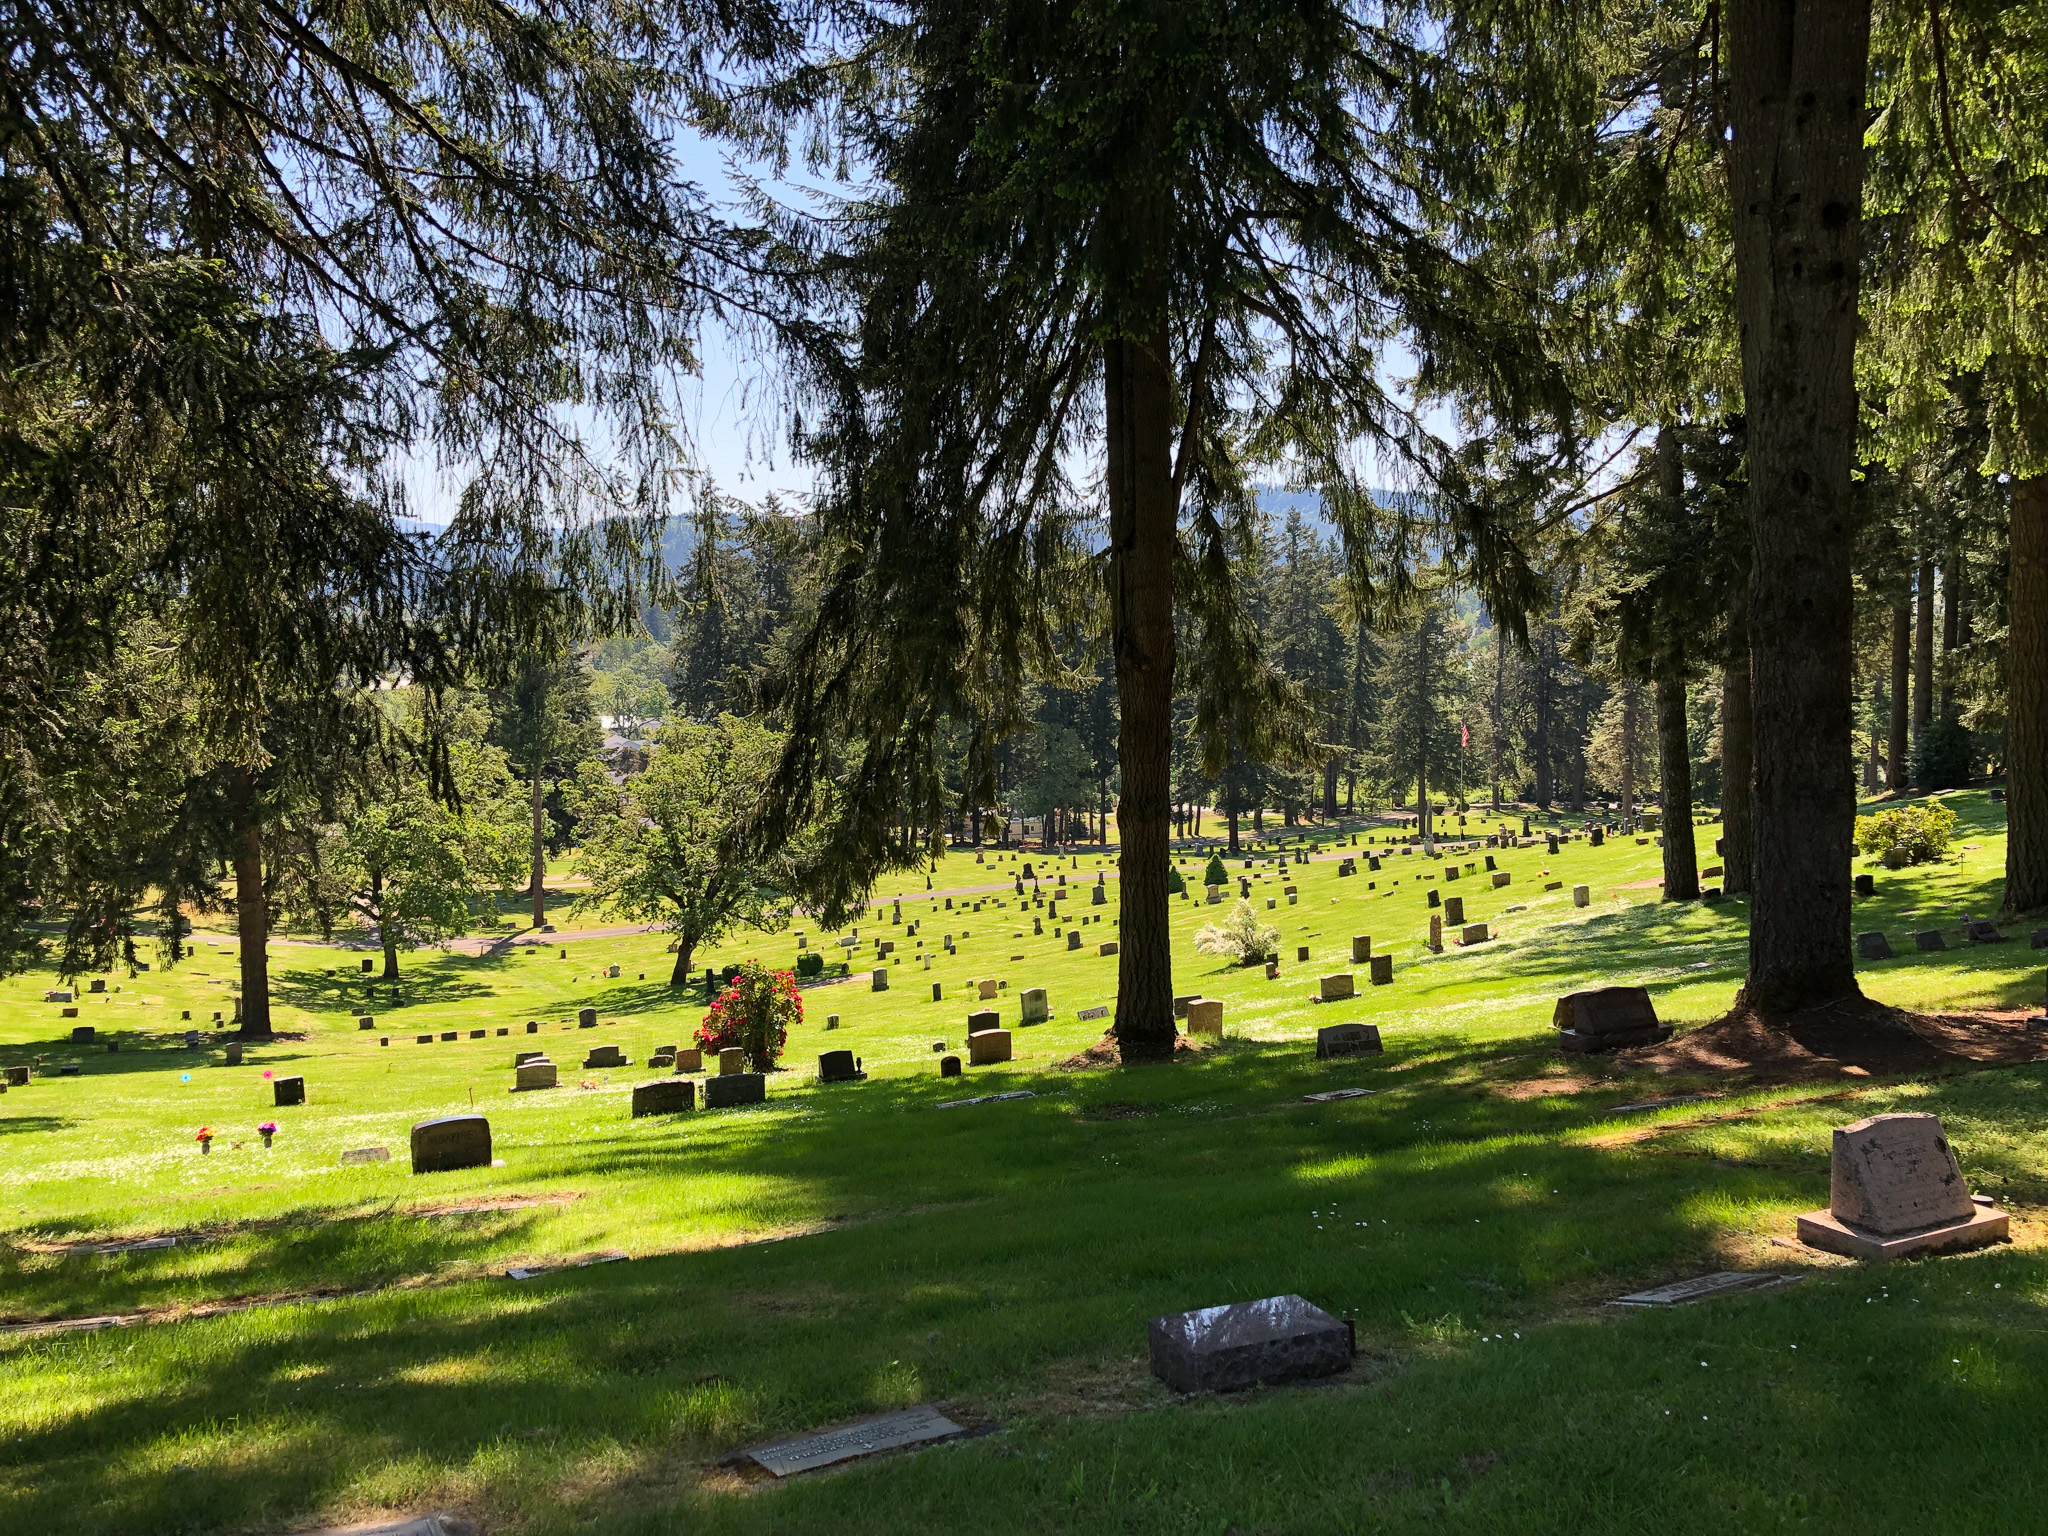 trees fir grove cemetery